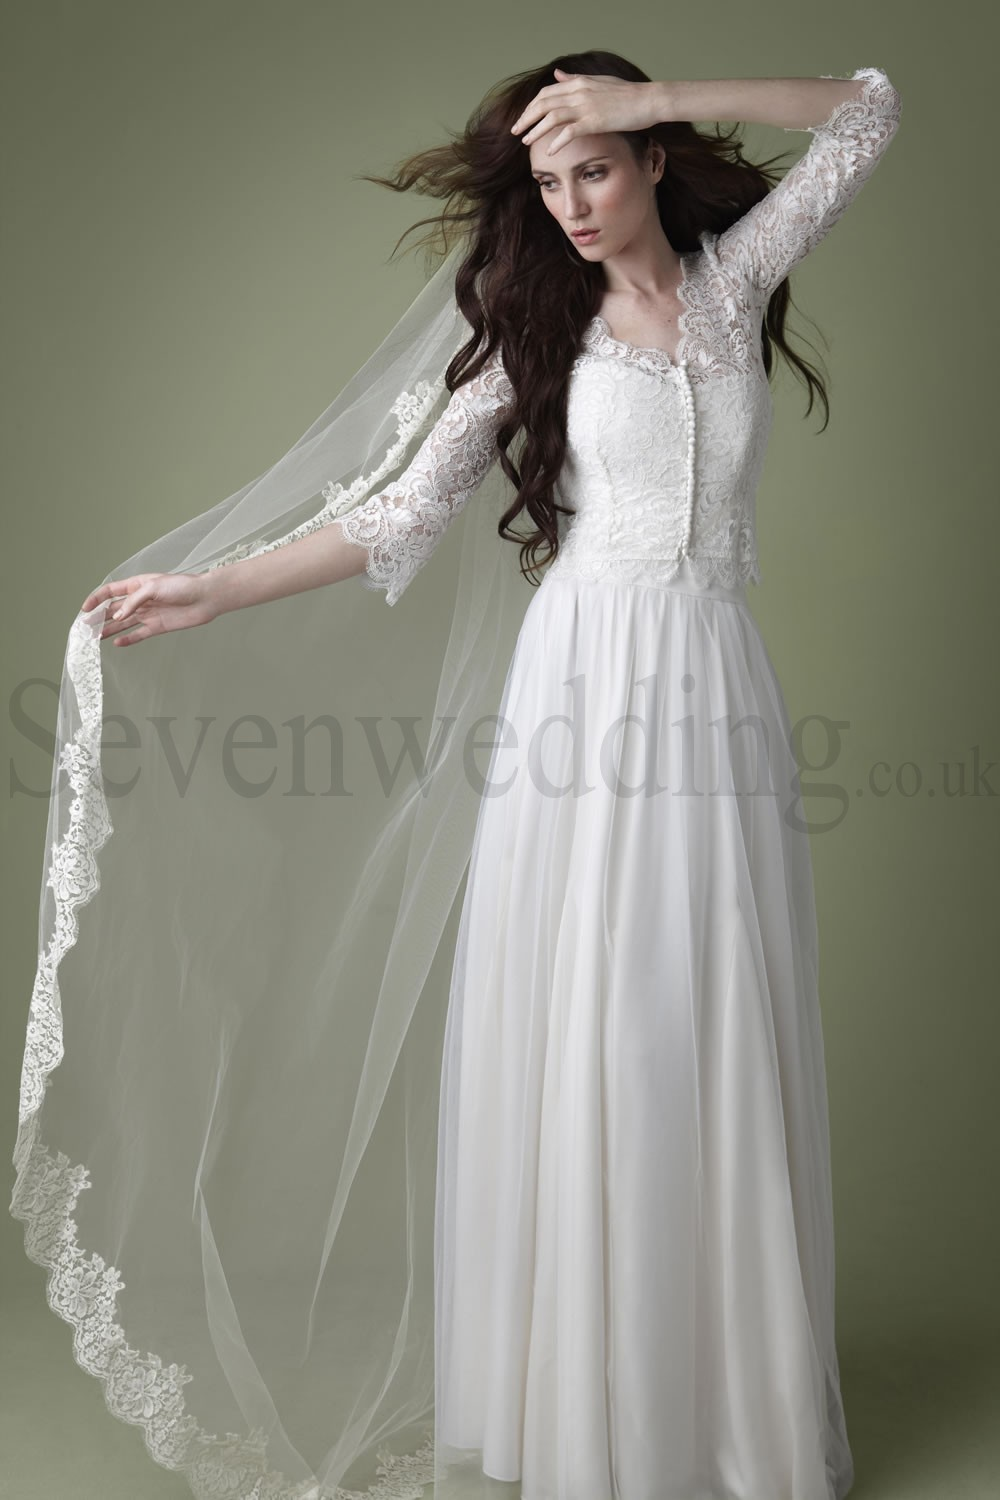 Sevenweddingdresses wedding gown for a civil marriage for Bridal dress for civil wedding